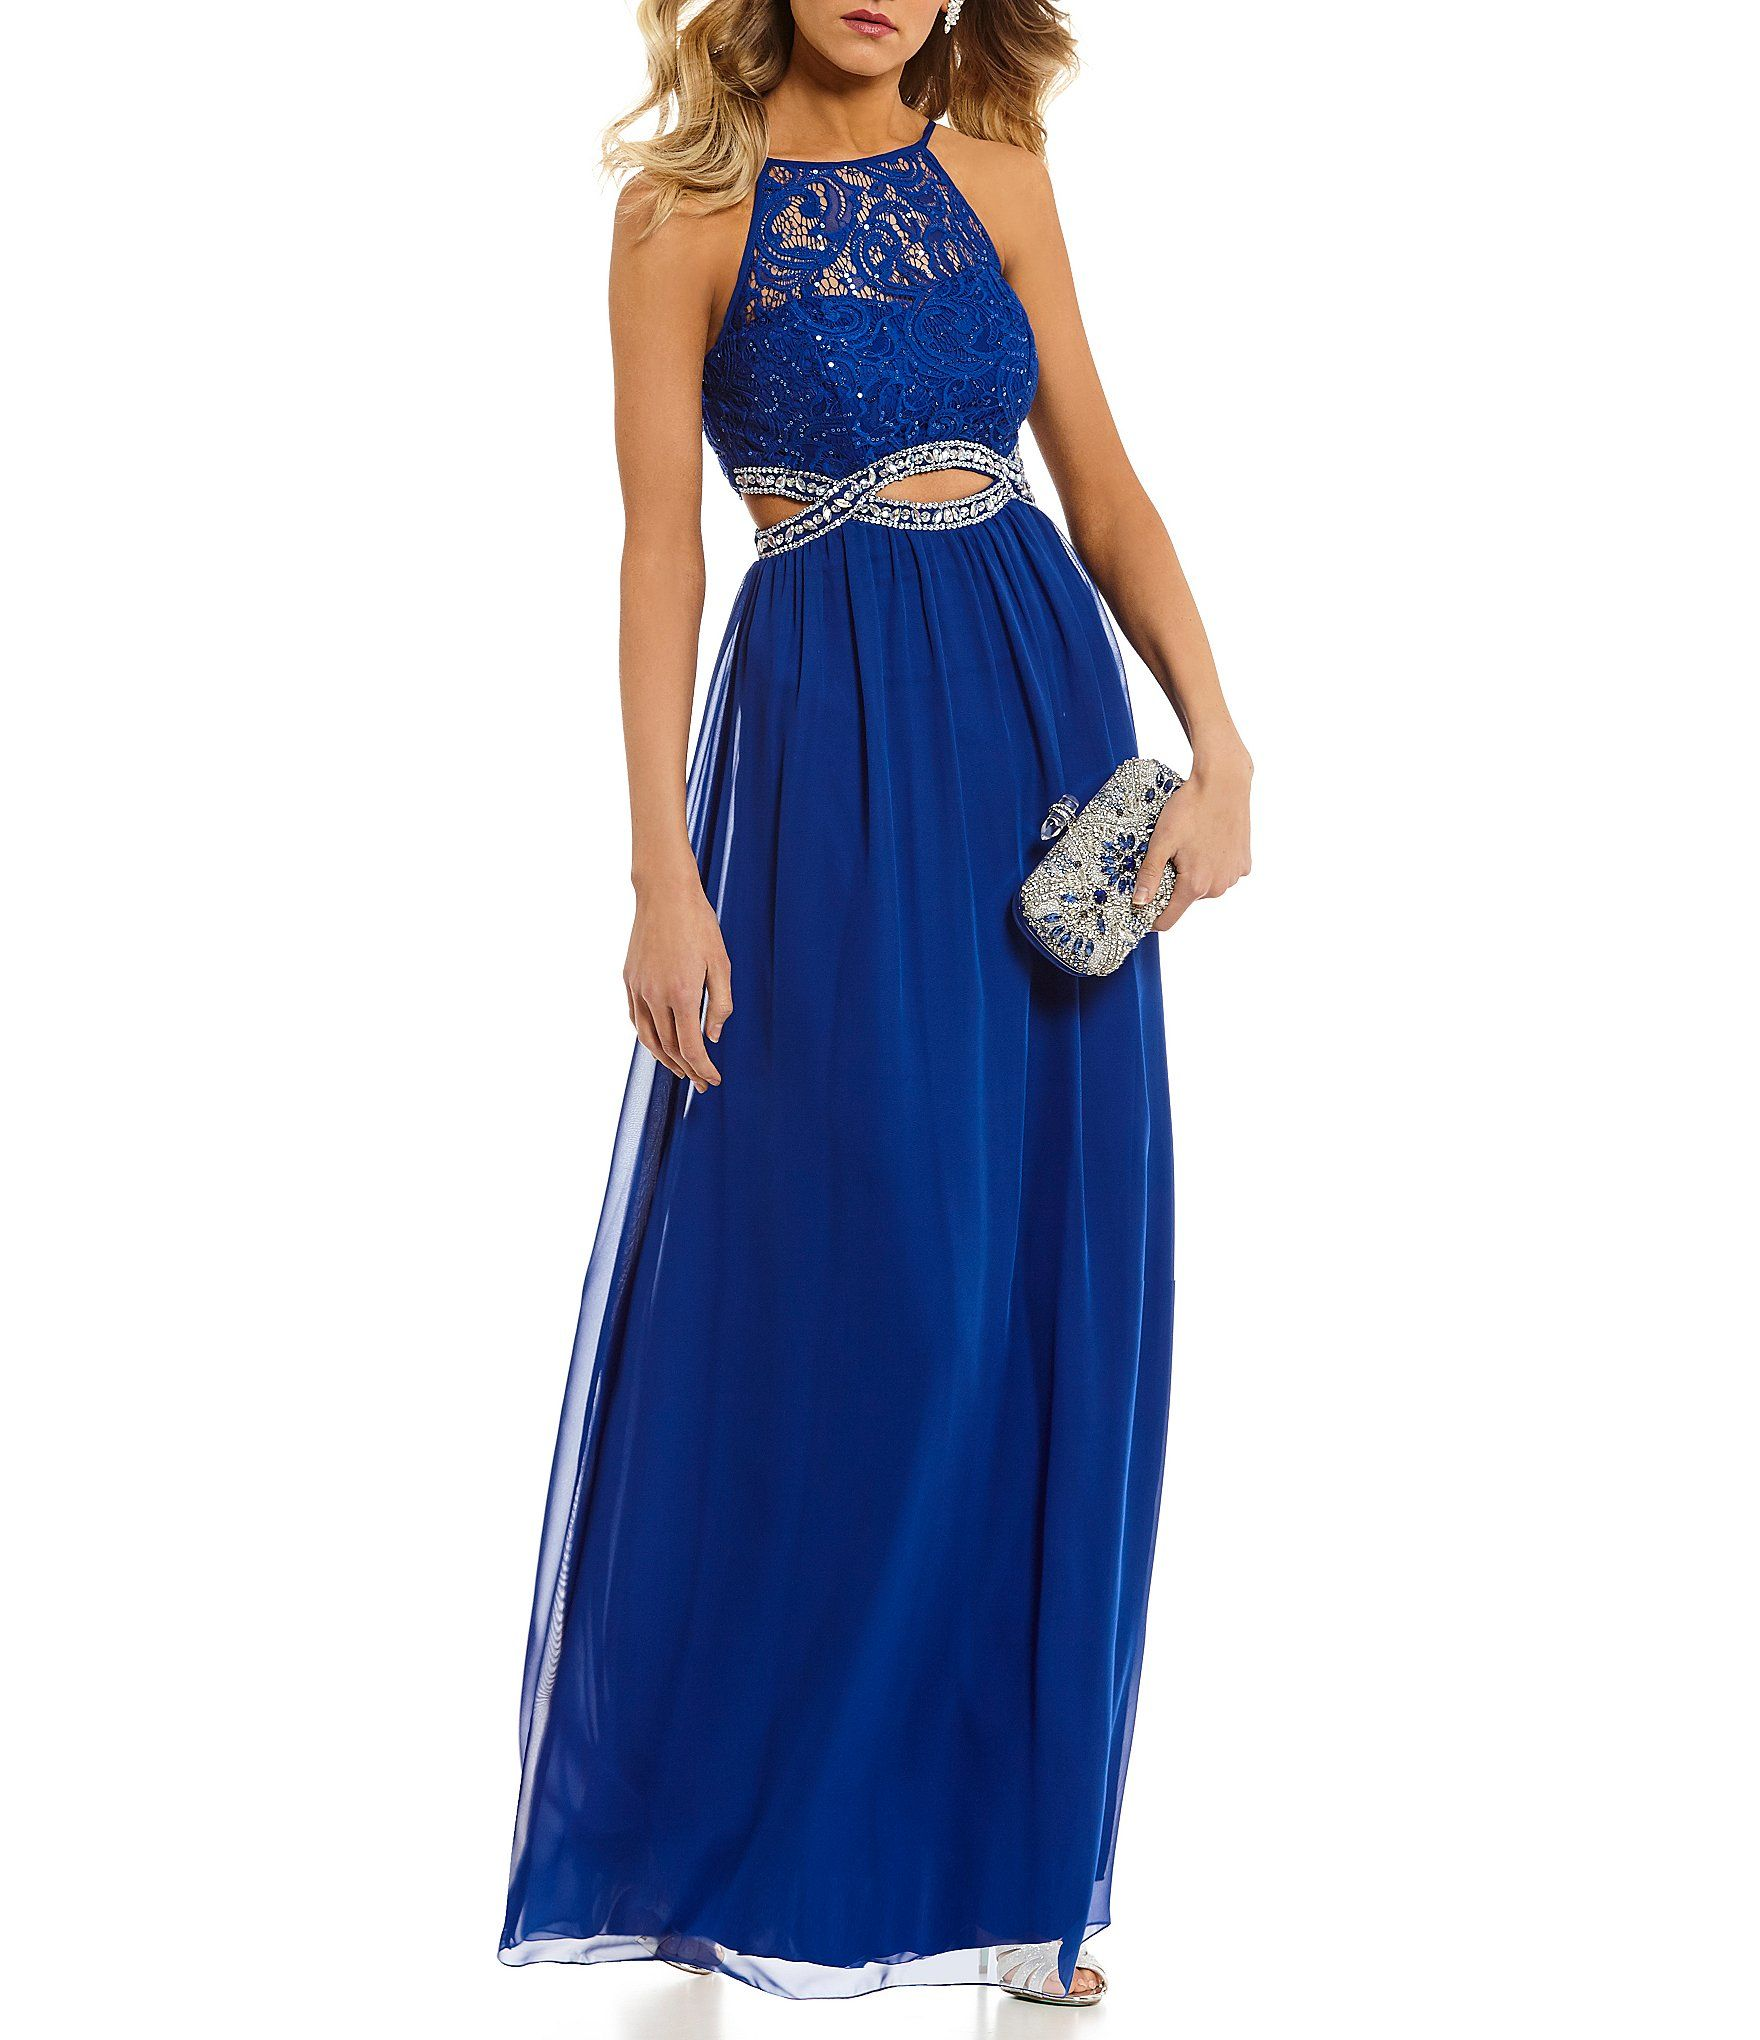 Pin by brianna thomas on prom dresses pinterest lace bodice